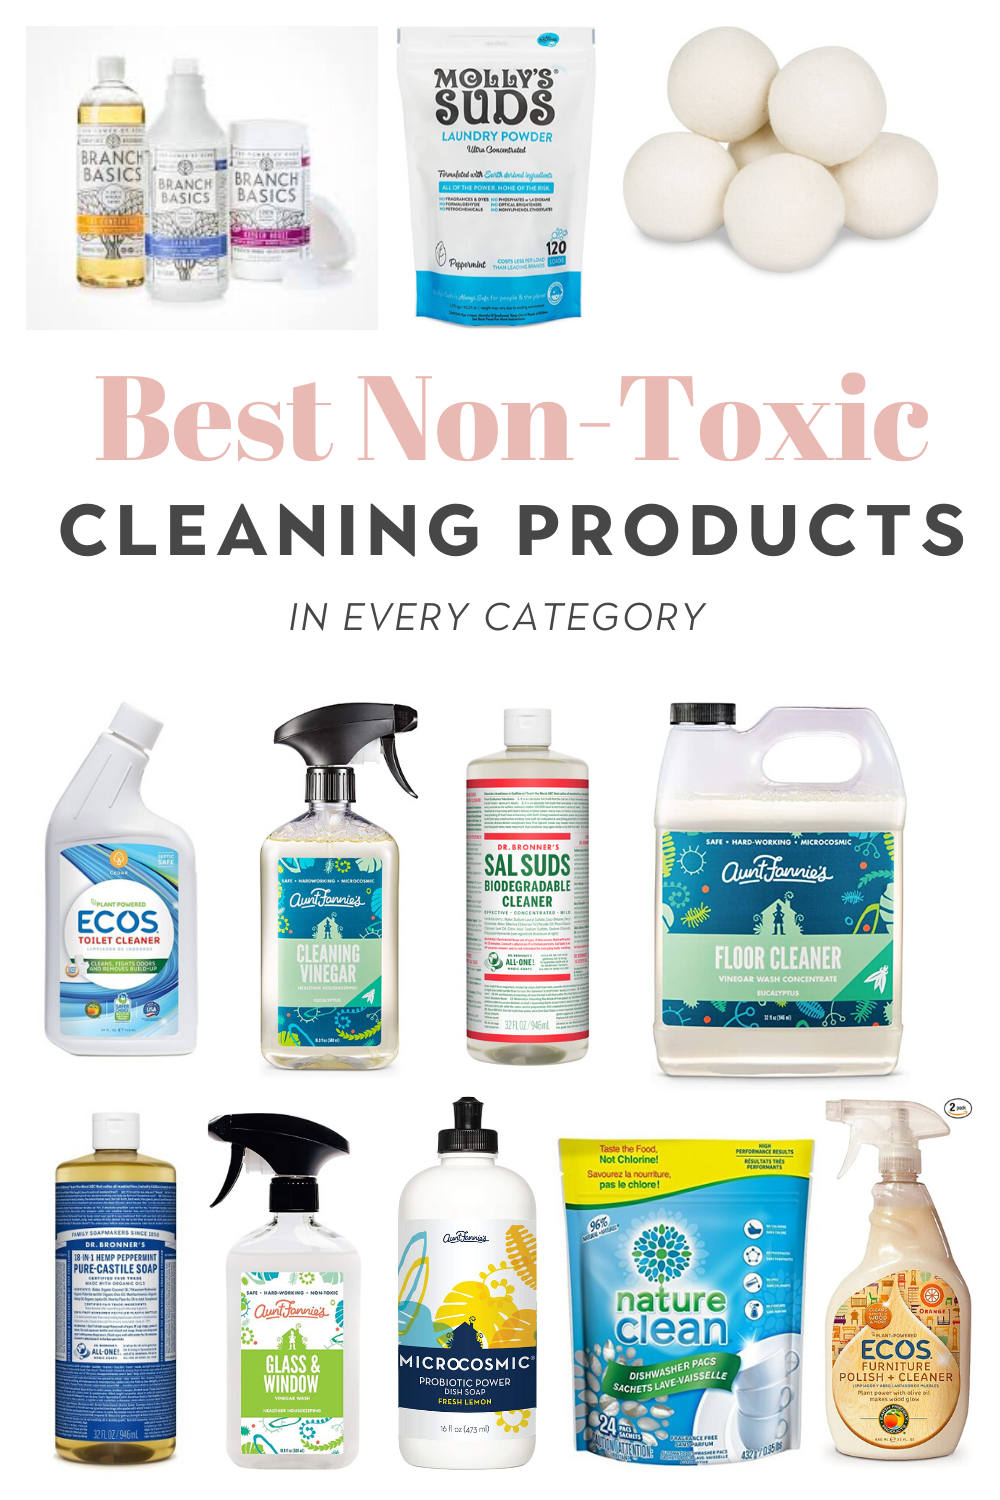 Best non-toxic bathroom, laundry, kitchen, floor, and all purpose cleaning products